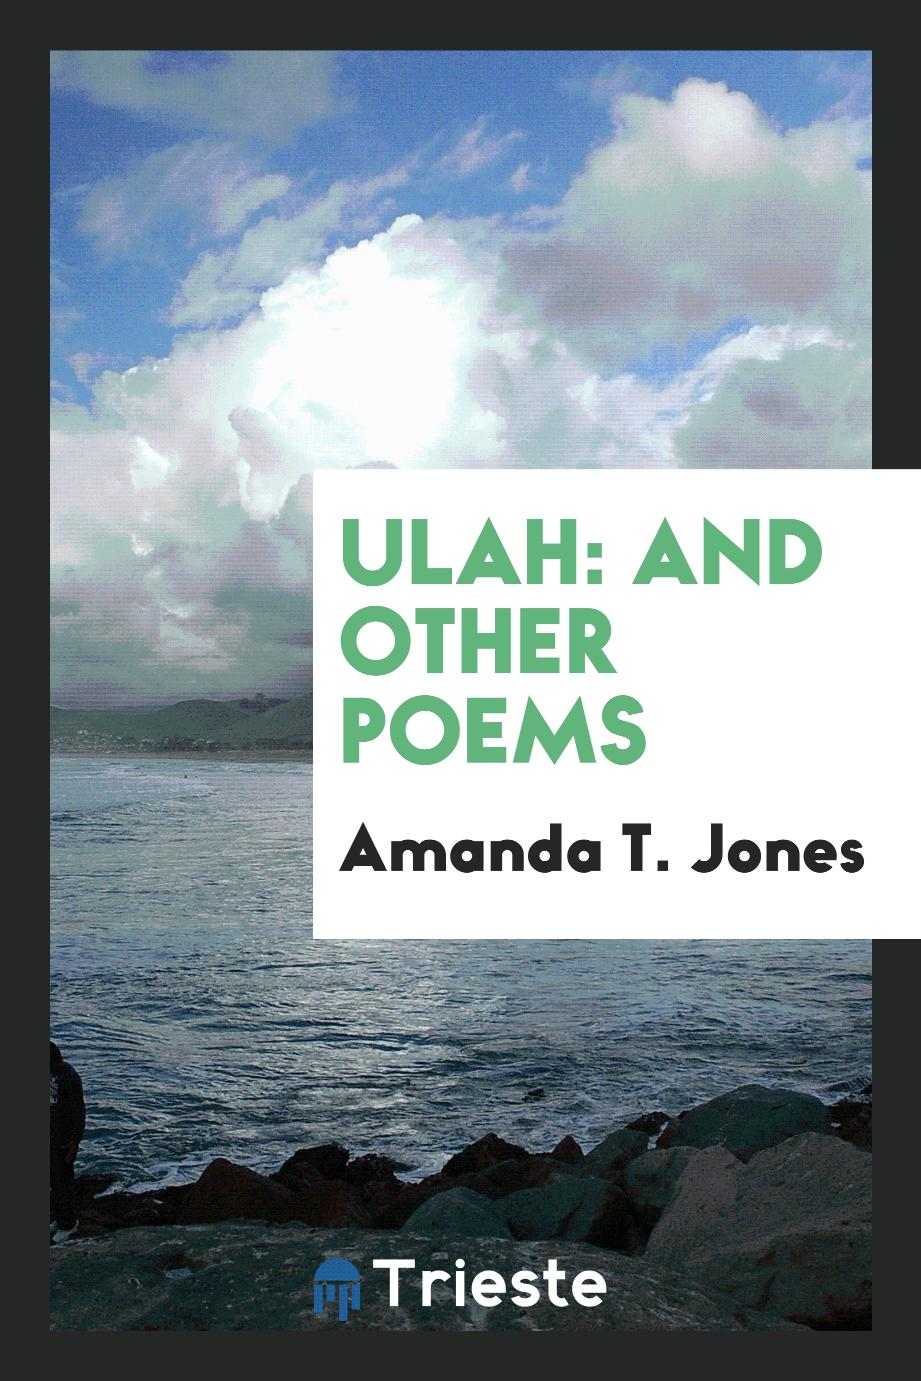 Amanda T. Jones - Ulah: And Other Poems